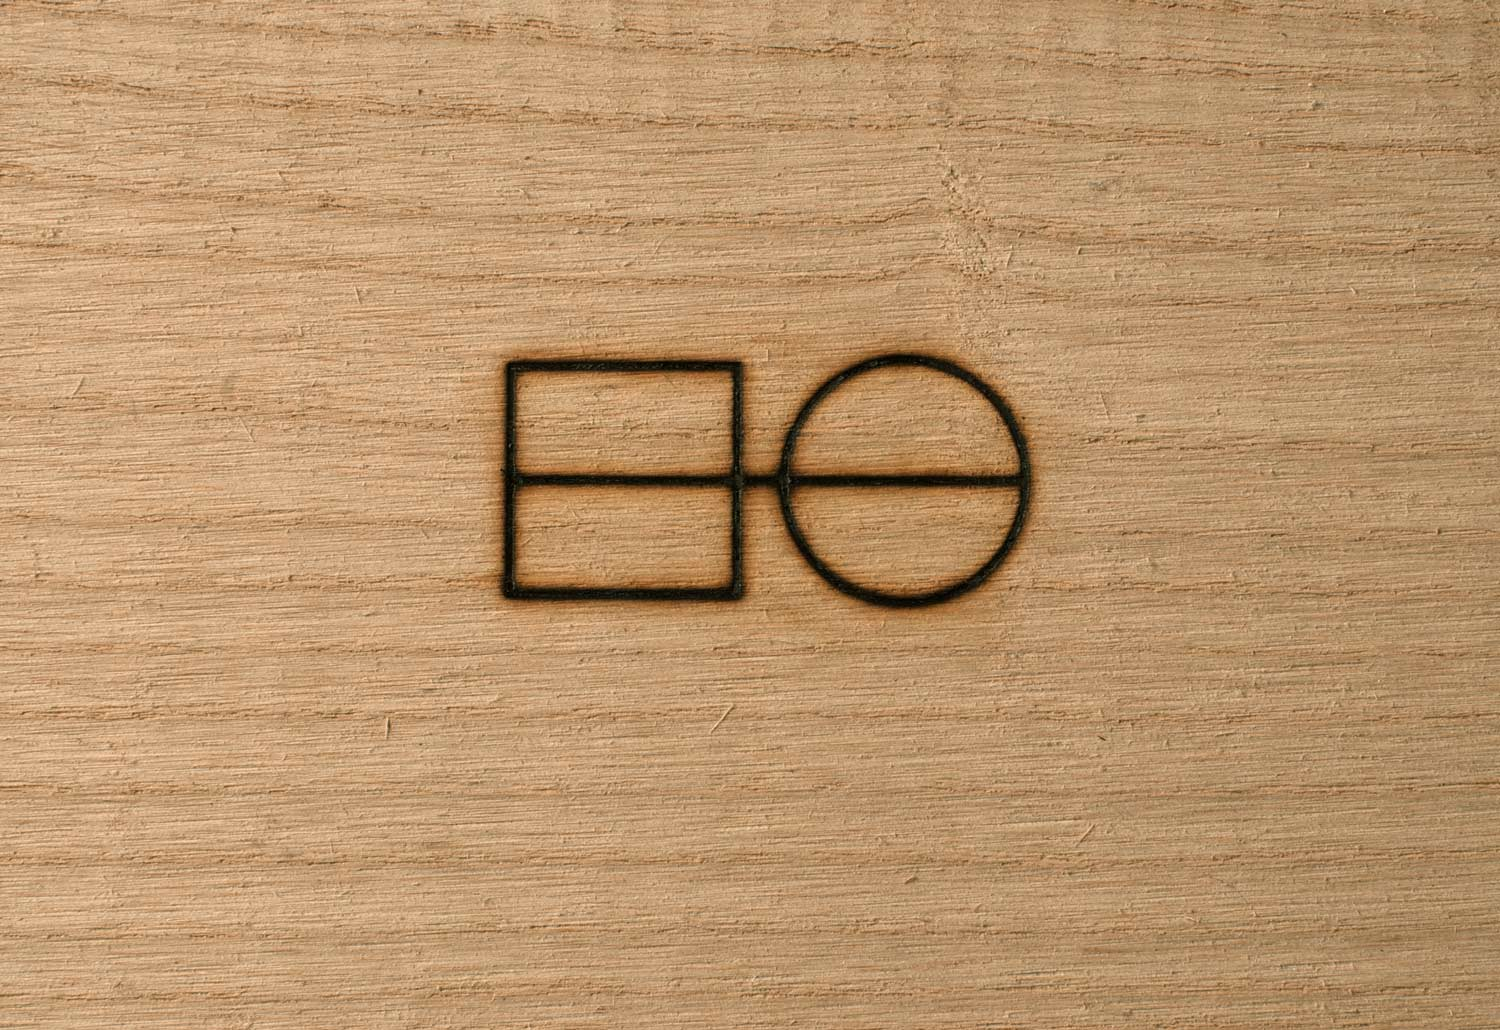 Wood branded with the Hard Goods logo